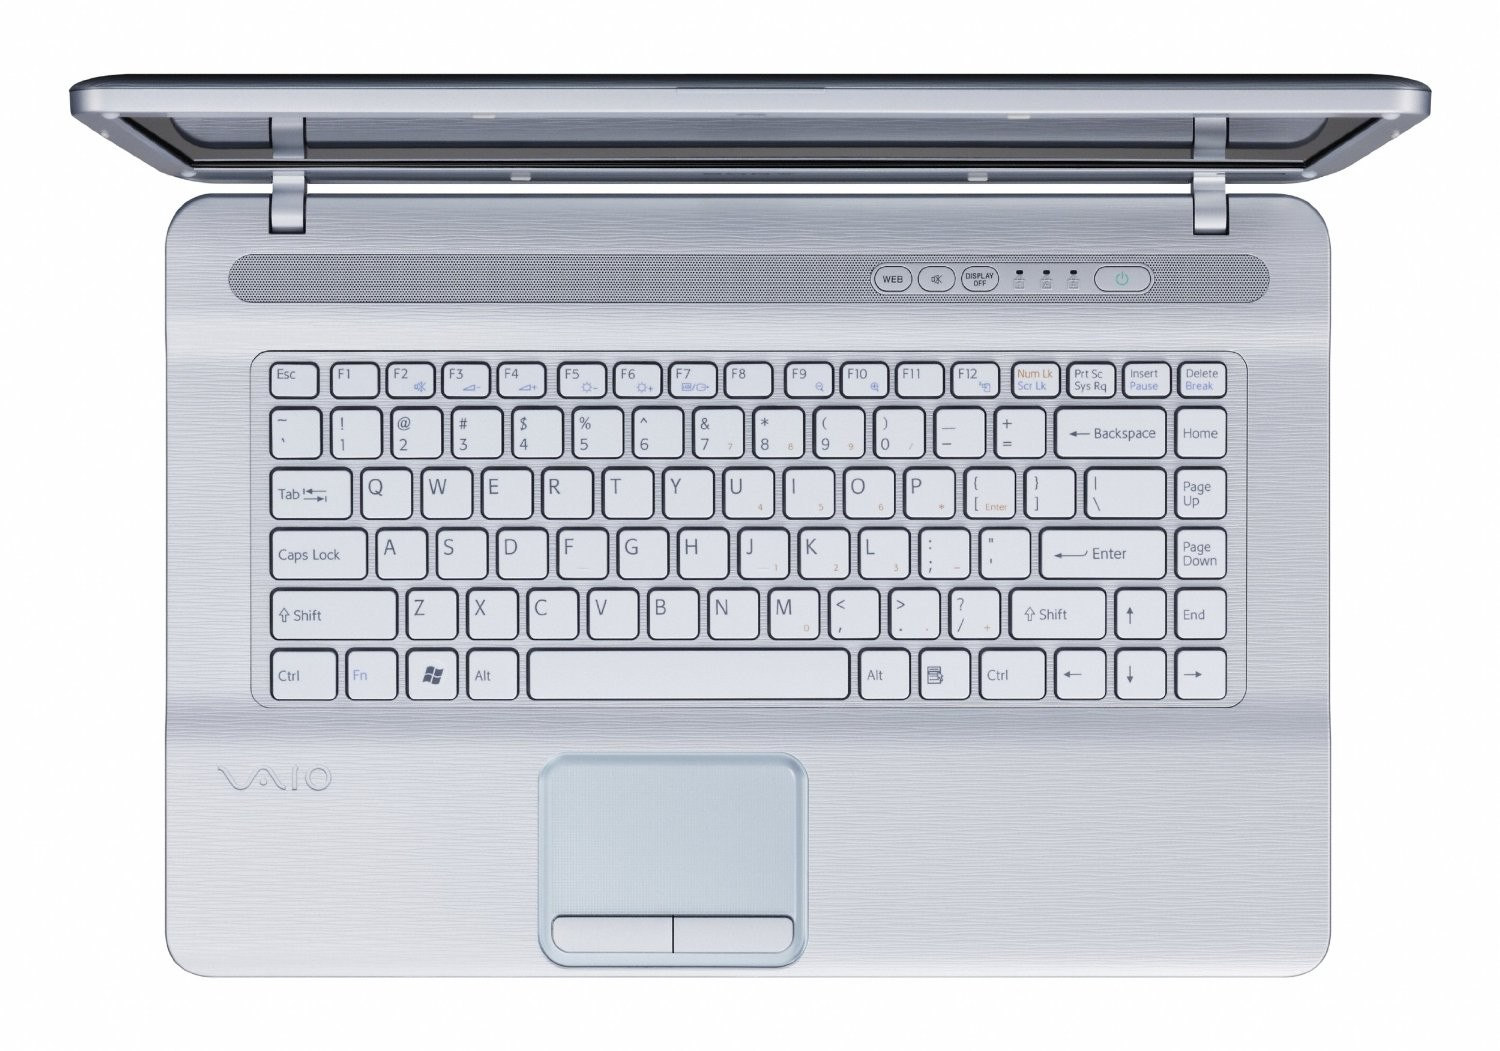 SONY VAIO VGN-NW11S DRIVERS PC